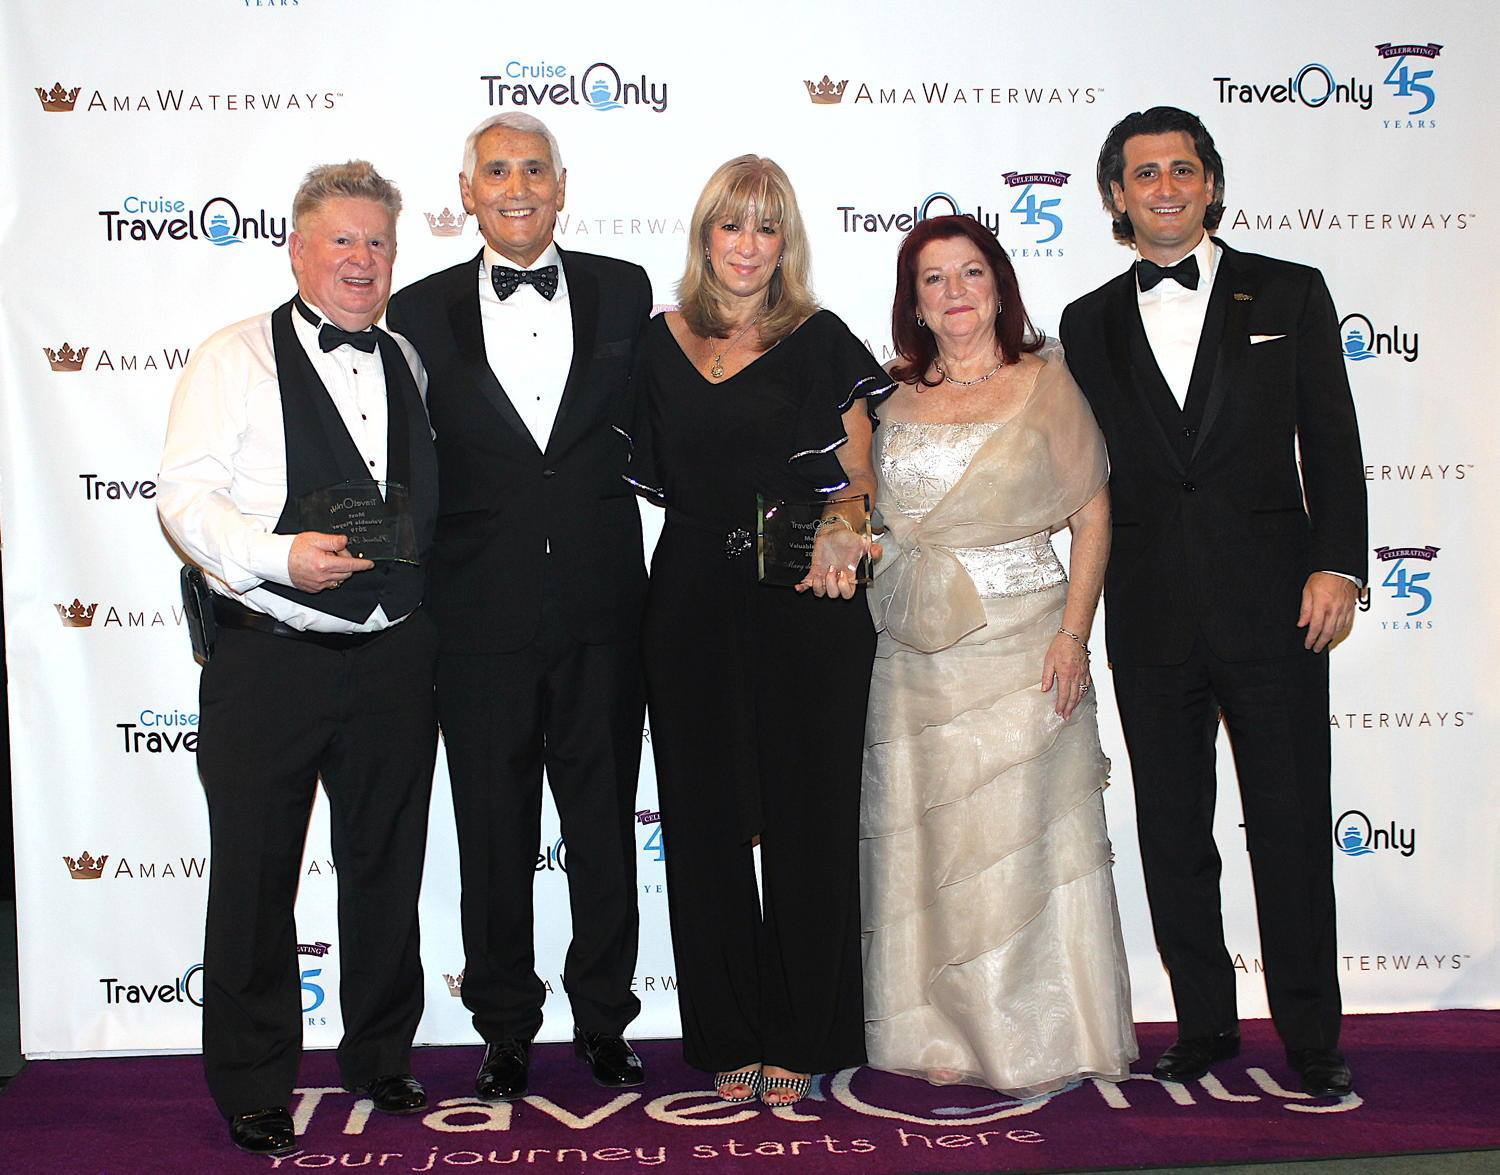 Pat Probert, Patrick Luciani, Mary de Almeida, Ann and Gregory Luciani, photographed together in January 2020. (Pax Global Media)